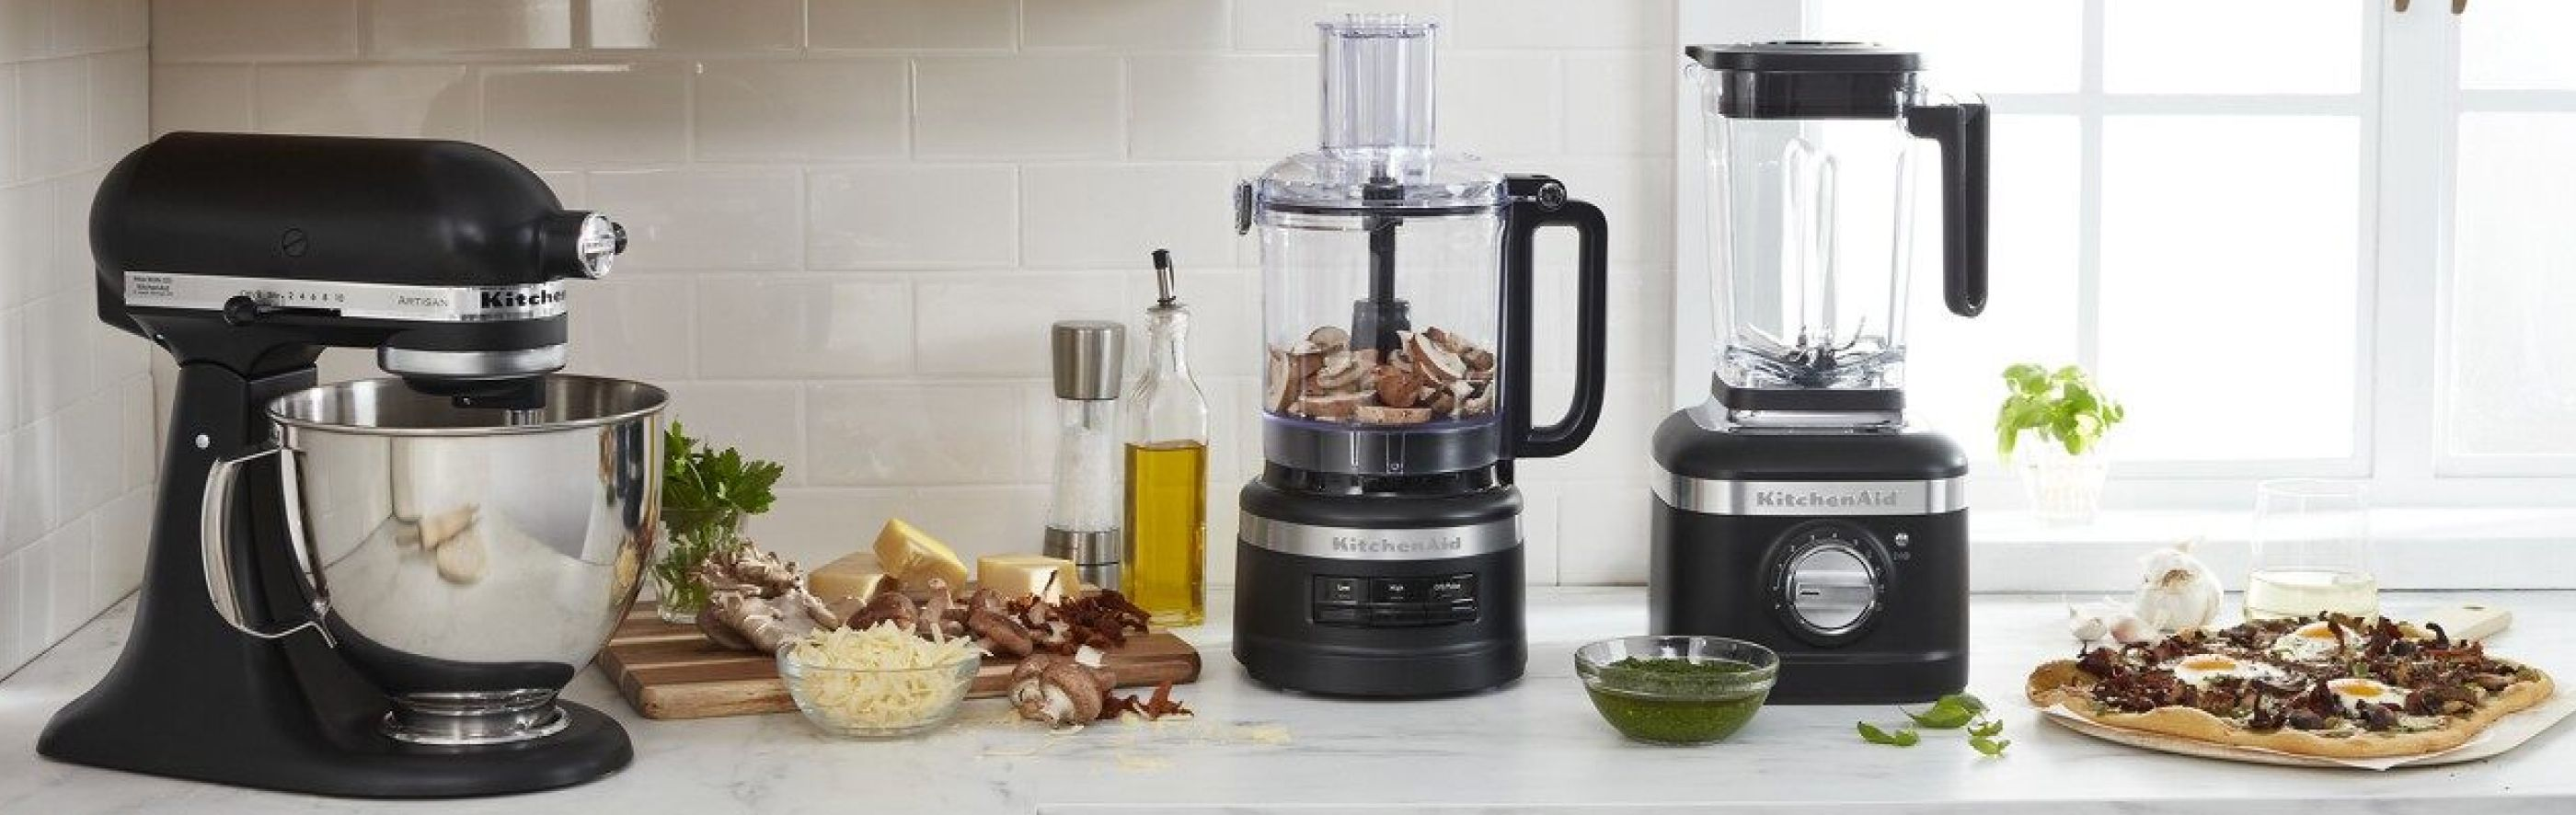 Black KitchenAid® stand mixer, food processor and blender on countertop